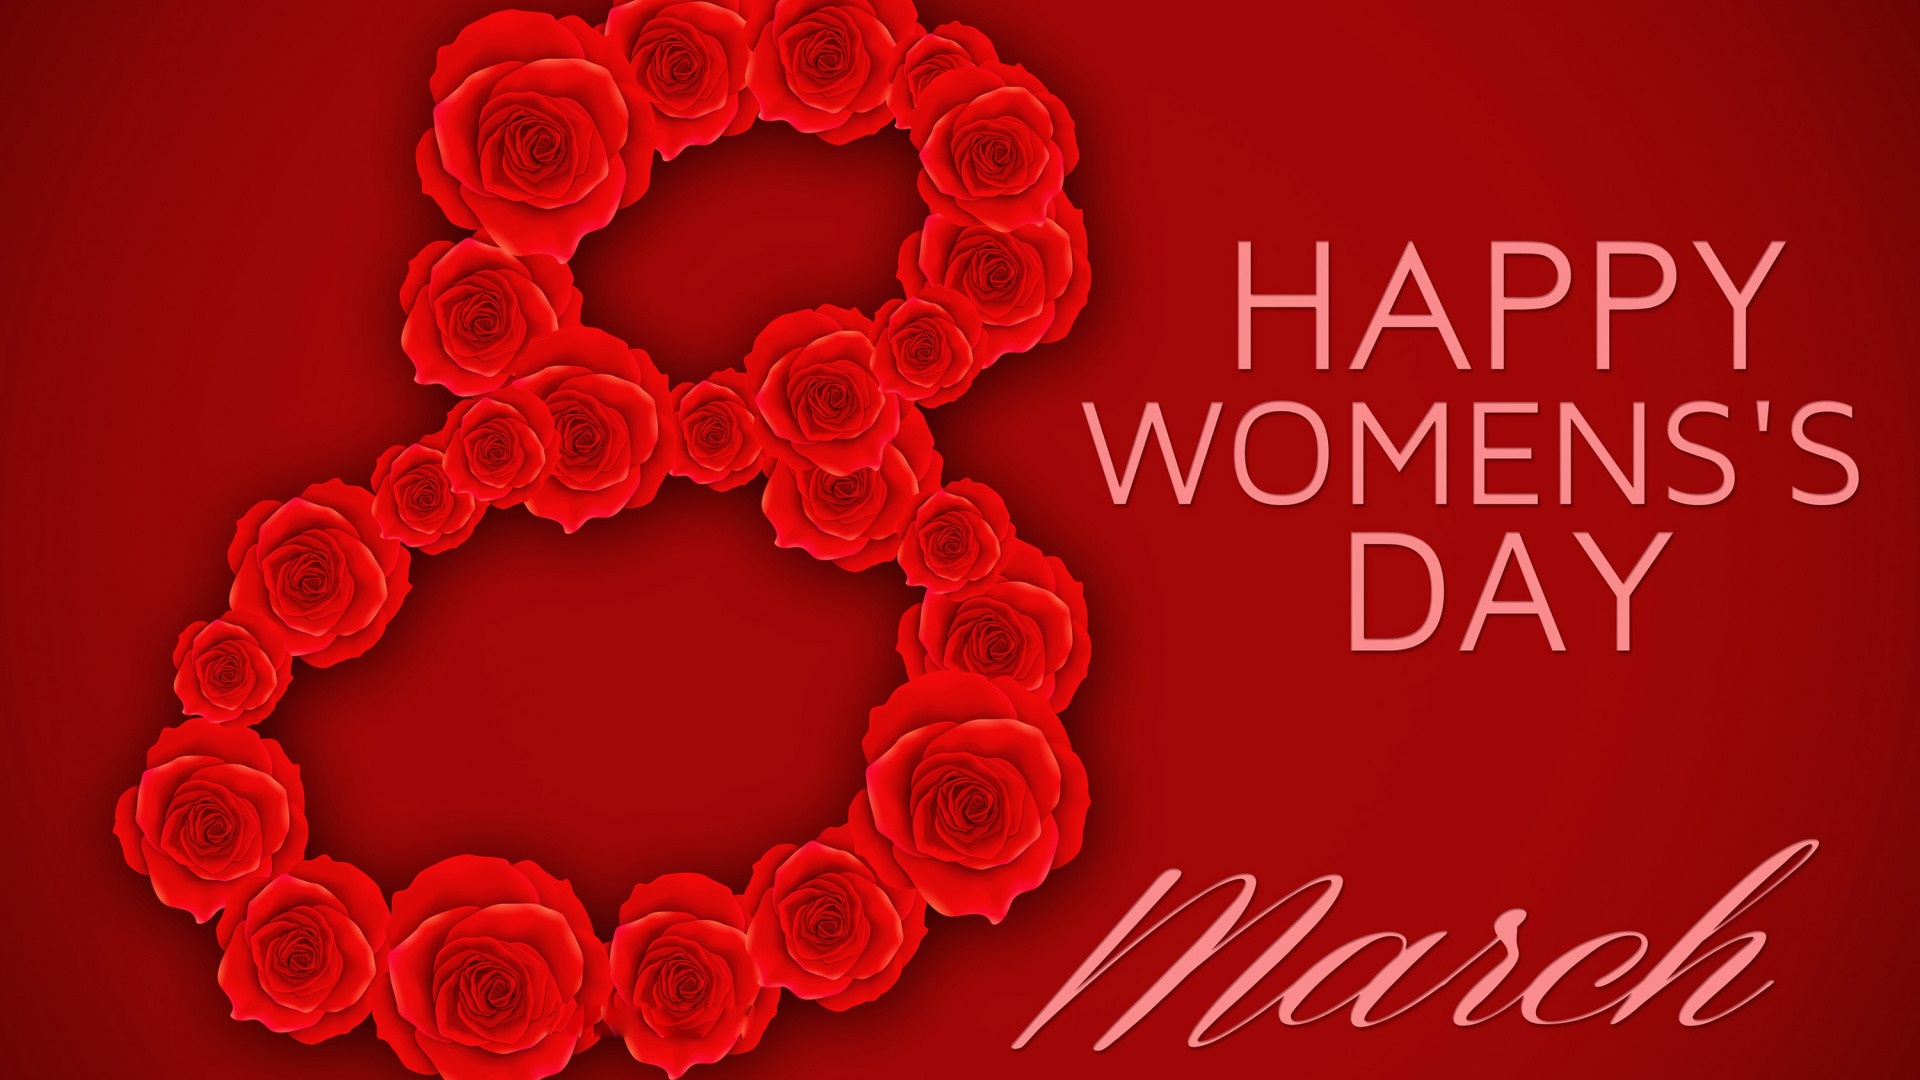 Happy Women's Day wallpaper for pc